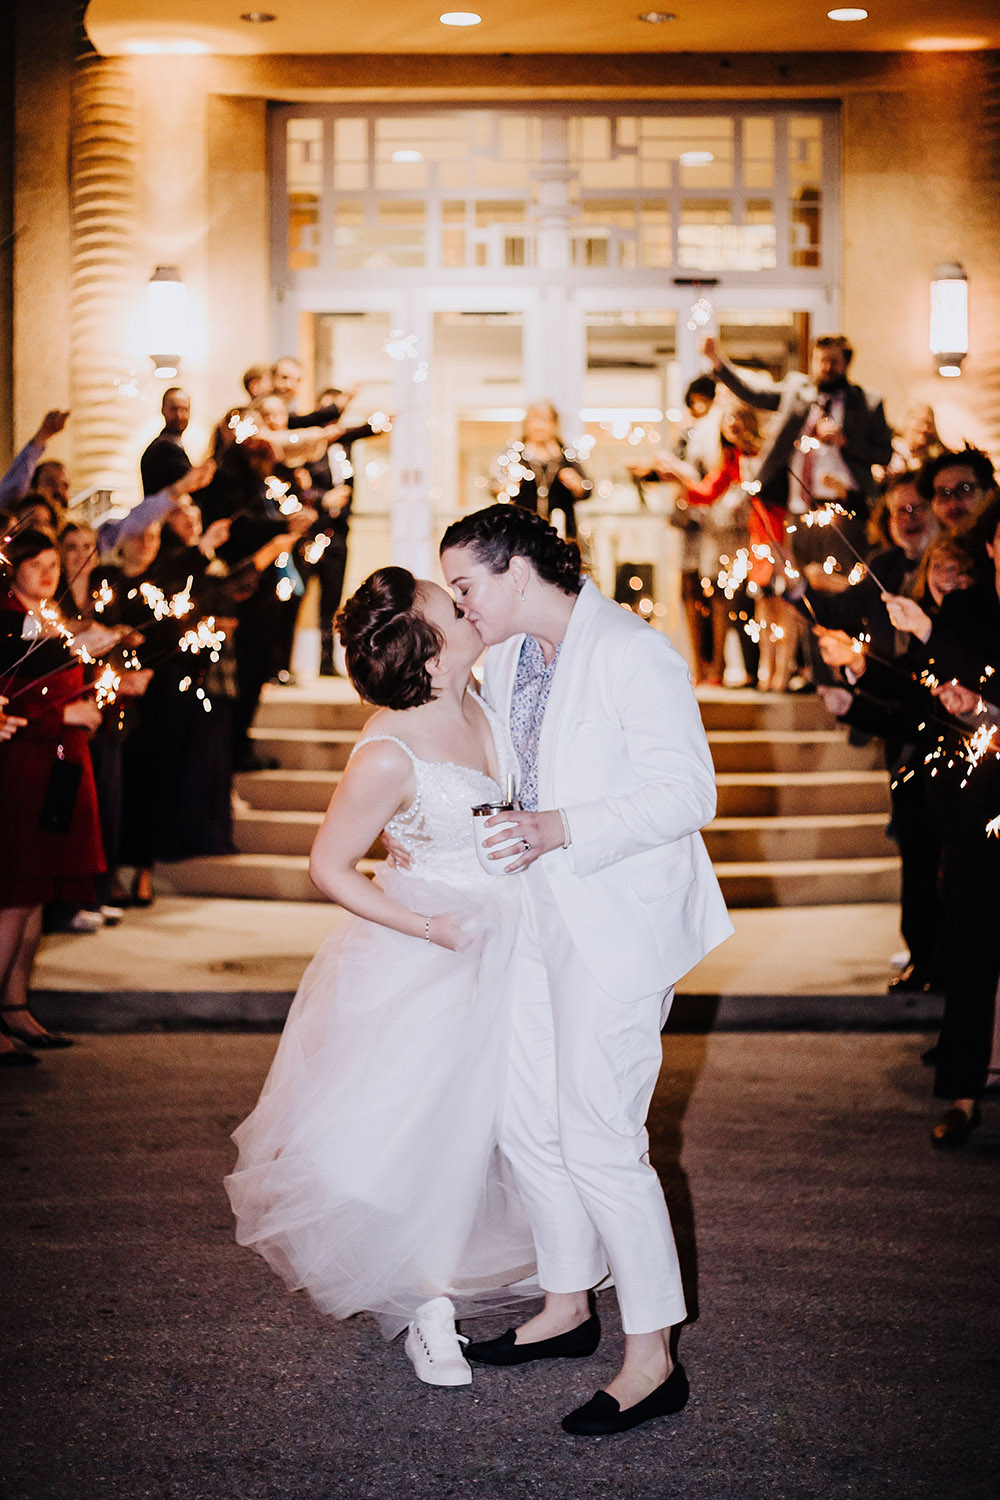 brides kissing outside between guests holding sparklers